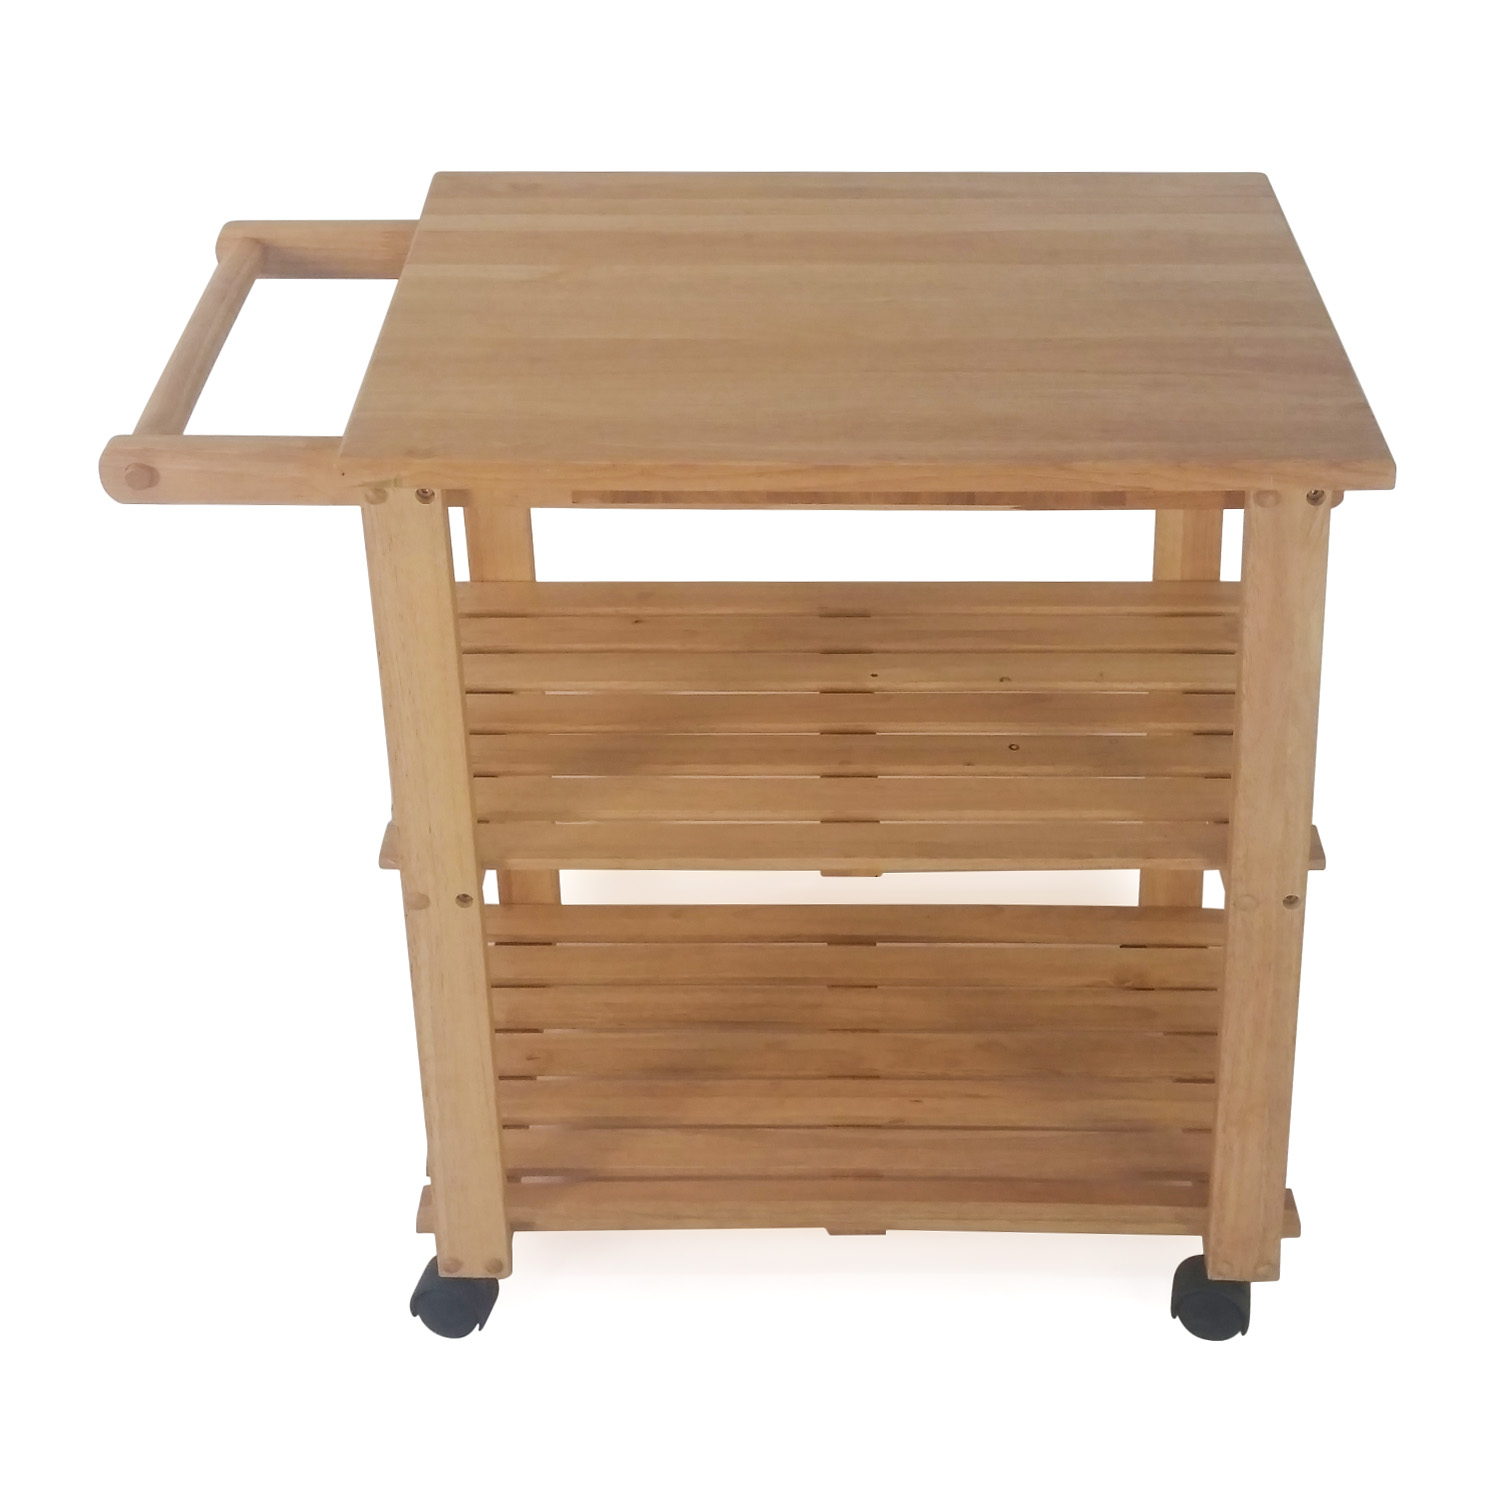 62 off ikea ikea varde kitchen butcher block island for Kitchen table with insert